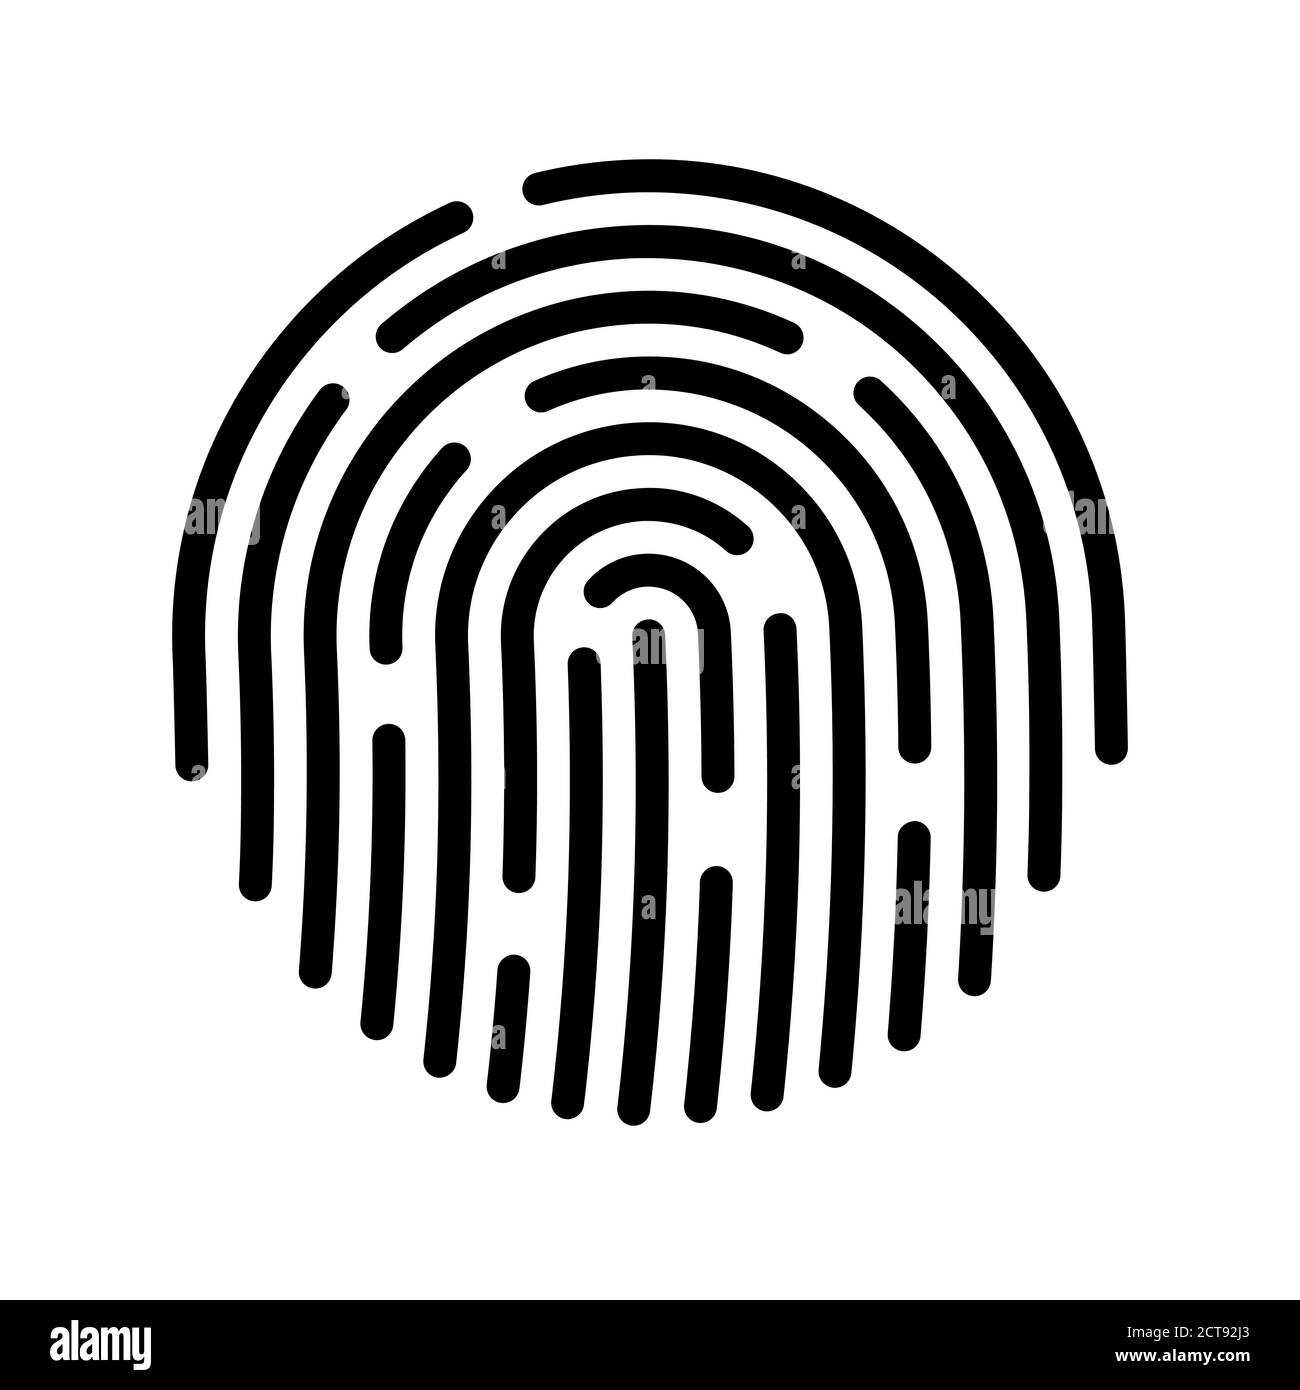 Blue fingerprint isolated on white background. Security scan for your device. Vector illustration. EPS 10. Stock Vector